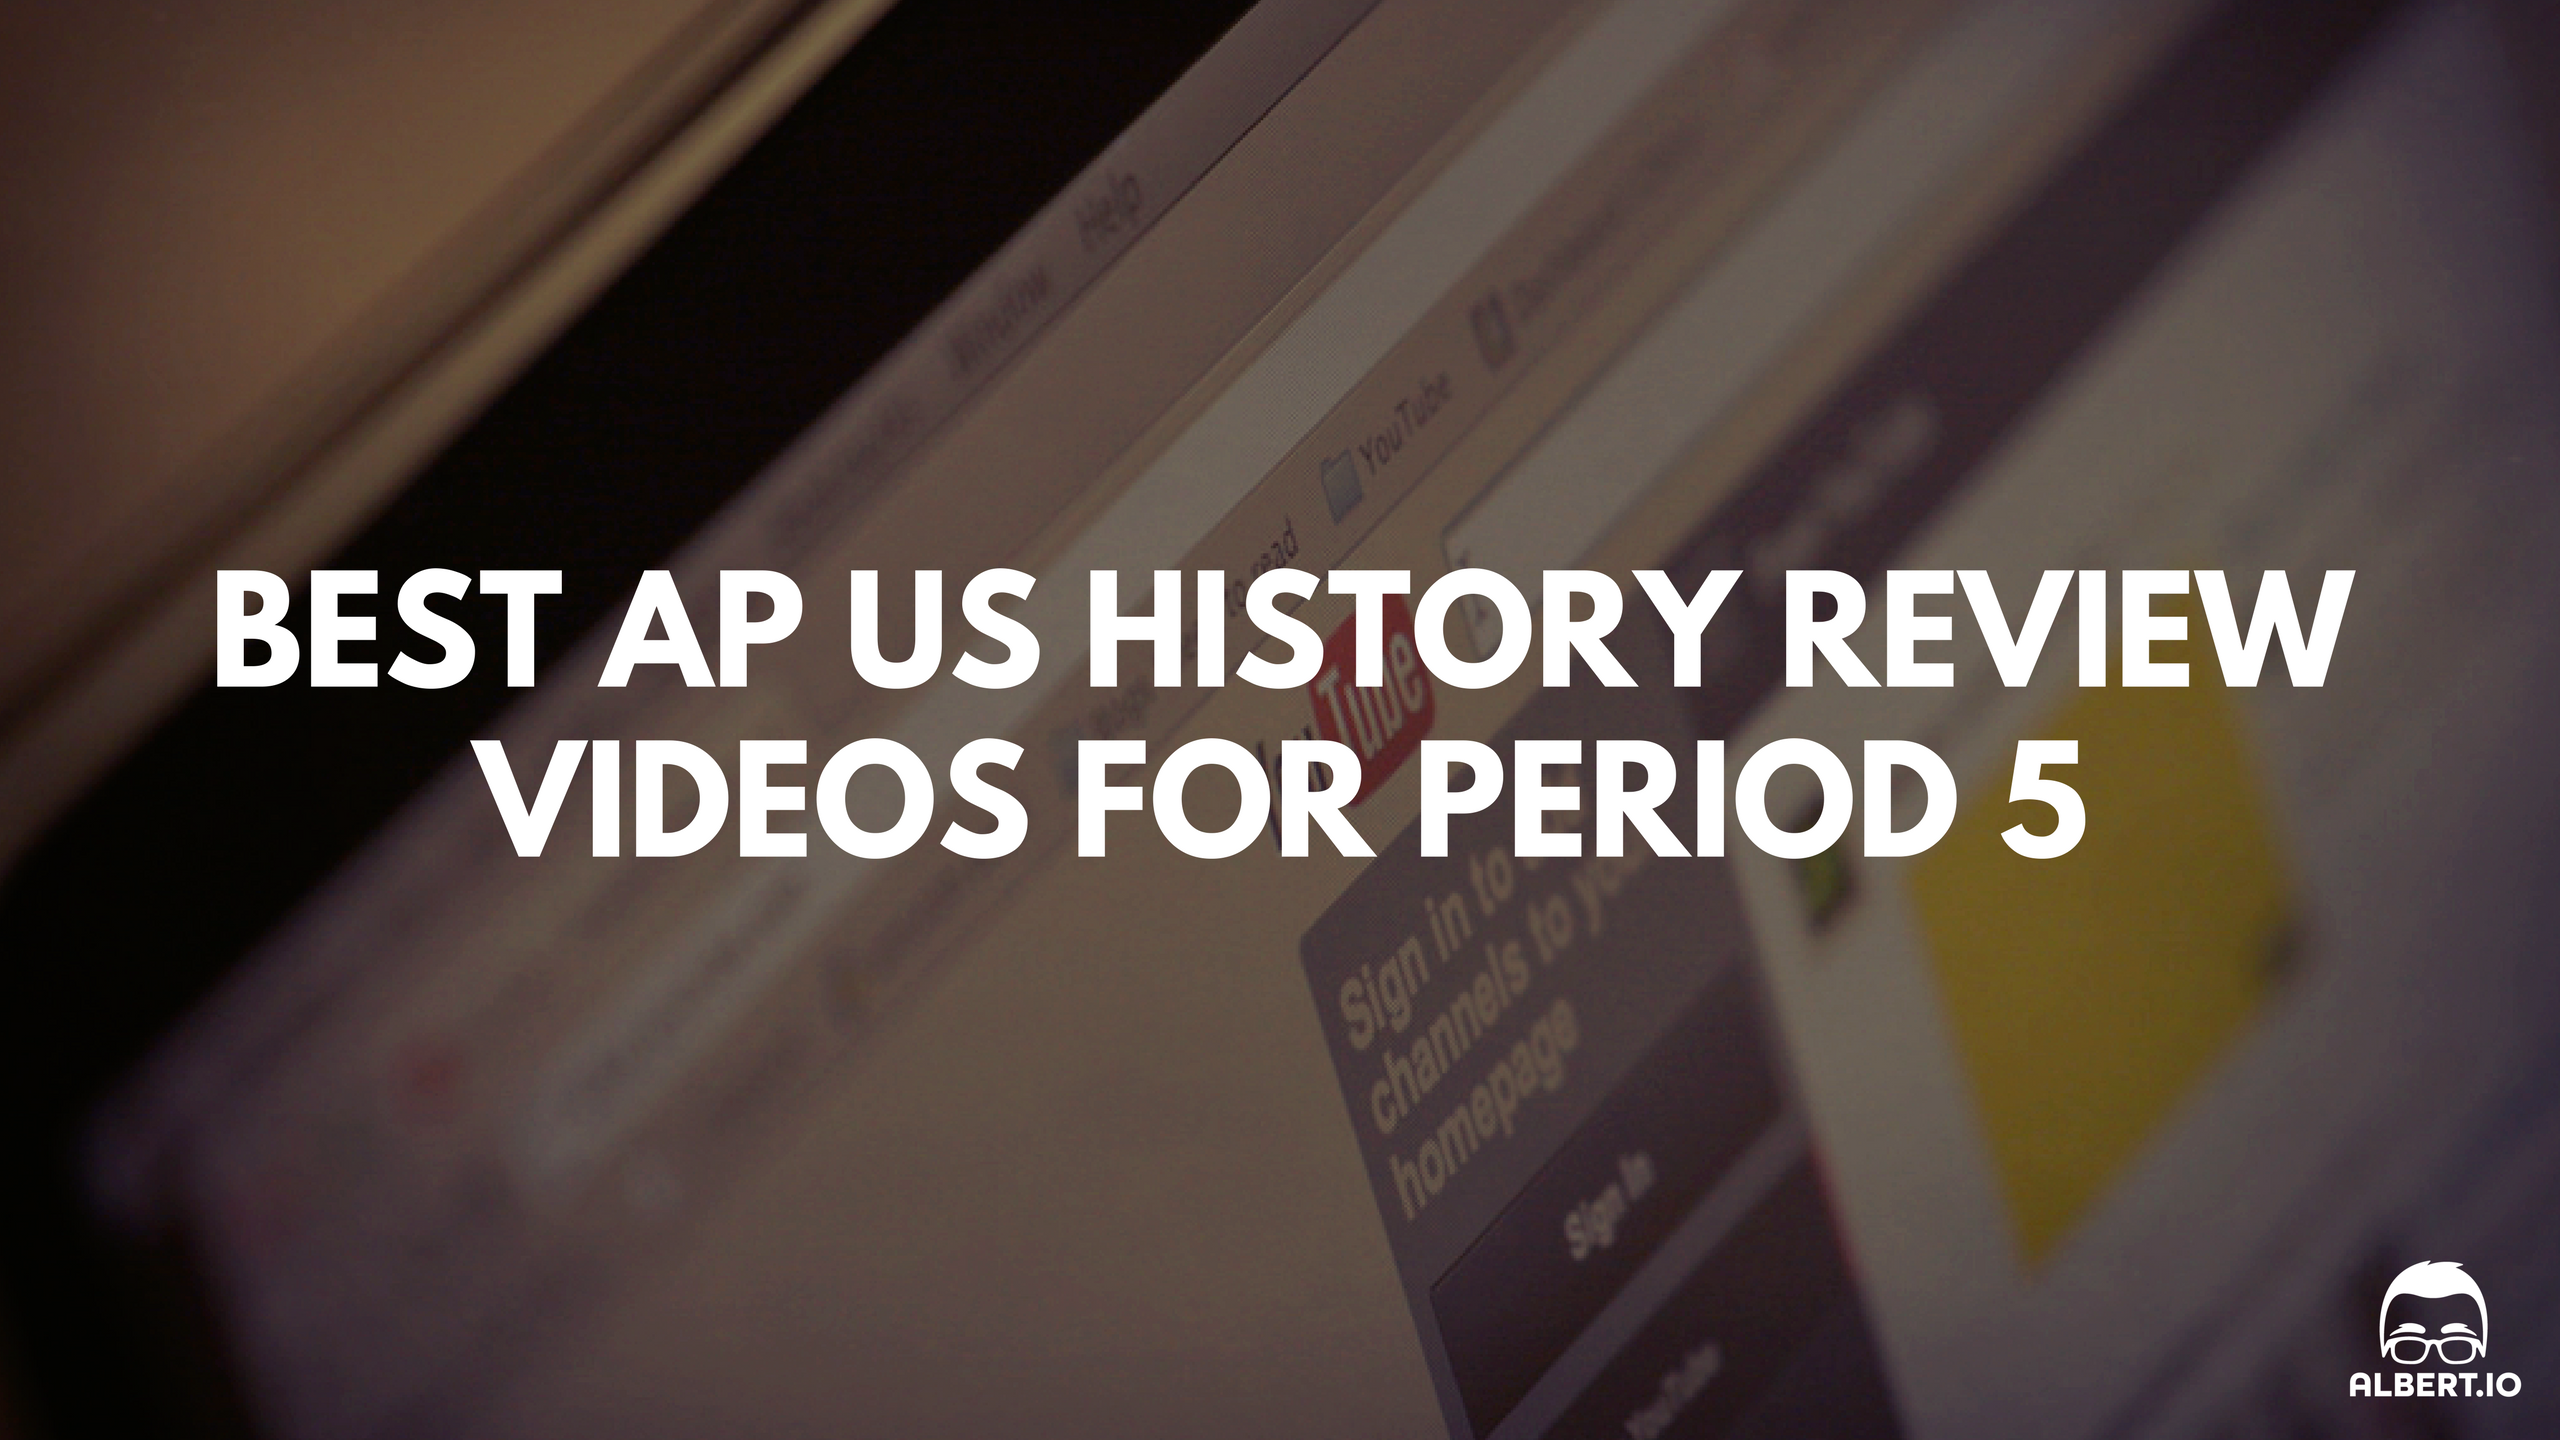 Best AP US History Review Videos: Adam Norris's APUSH Review